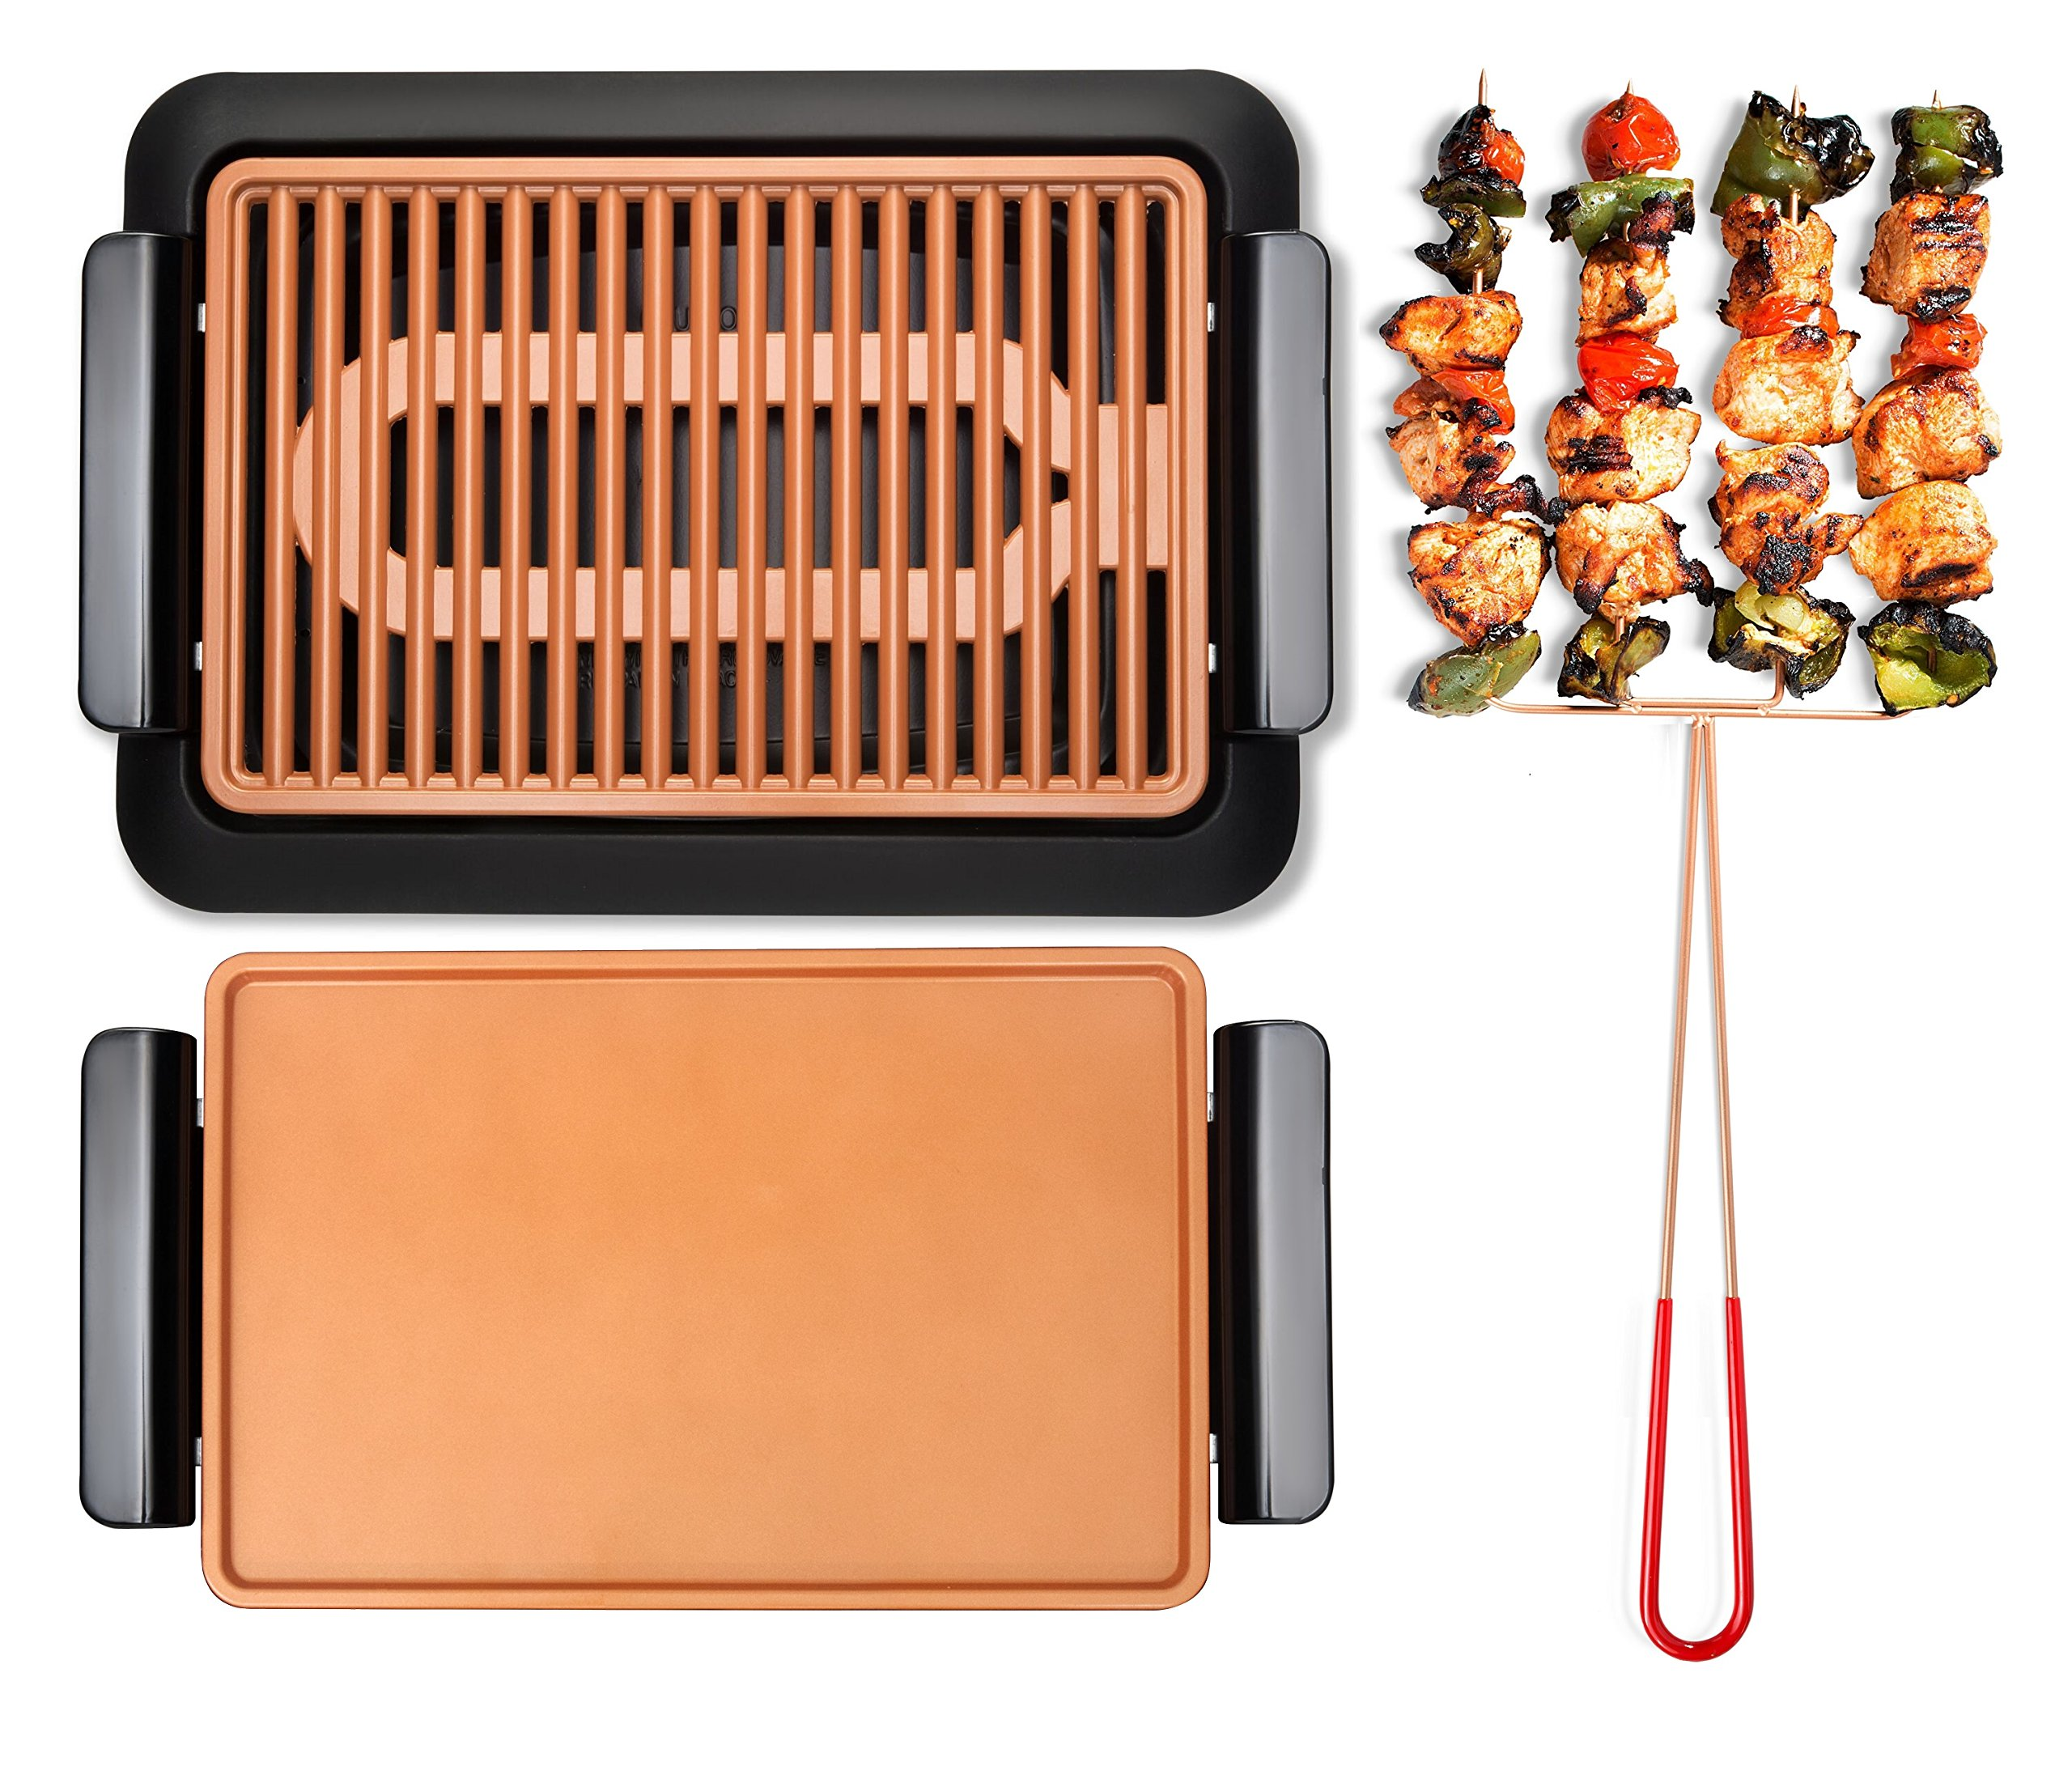 GOTHAM STEEL Smokeless Electric Grill, Griddle, and Pitchfork, Indoor BBQ and Nonstick As Seen On TV (Large) by GOTHAM STEEL